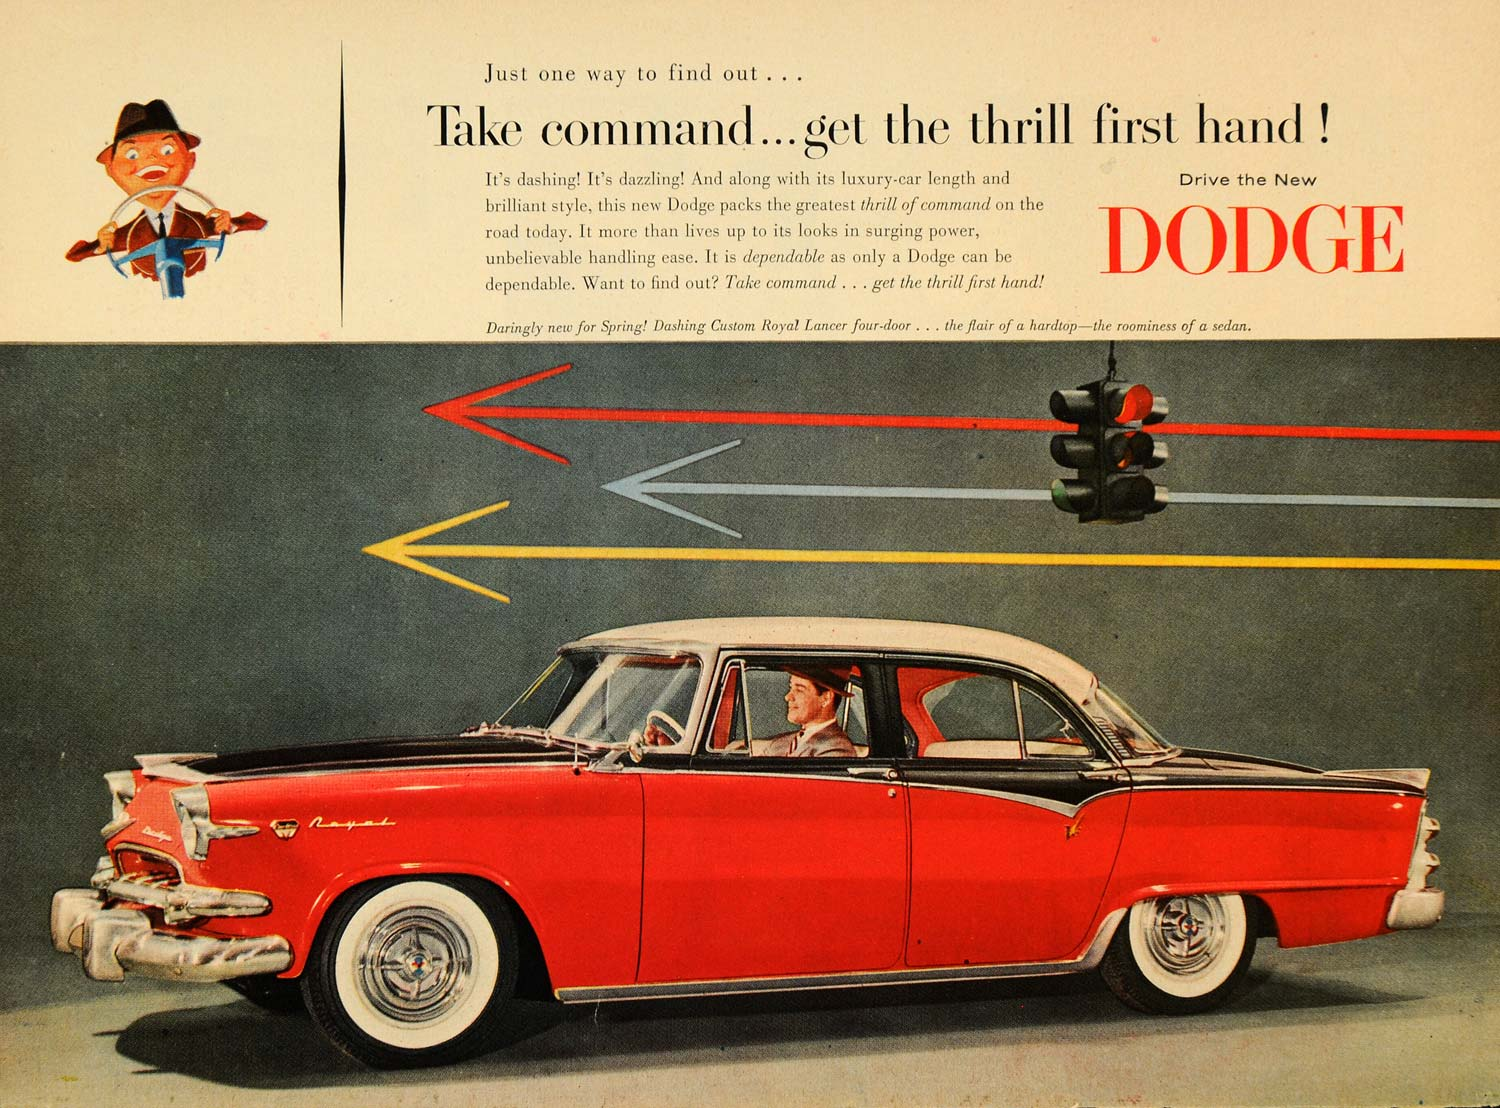 1955 Dodge Rpyal Lancer tri color